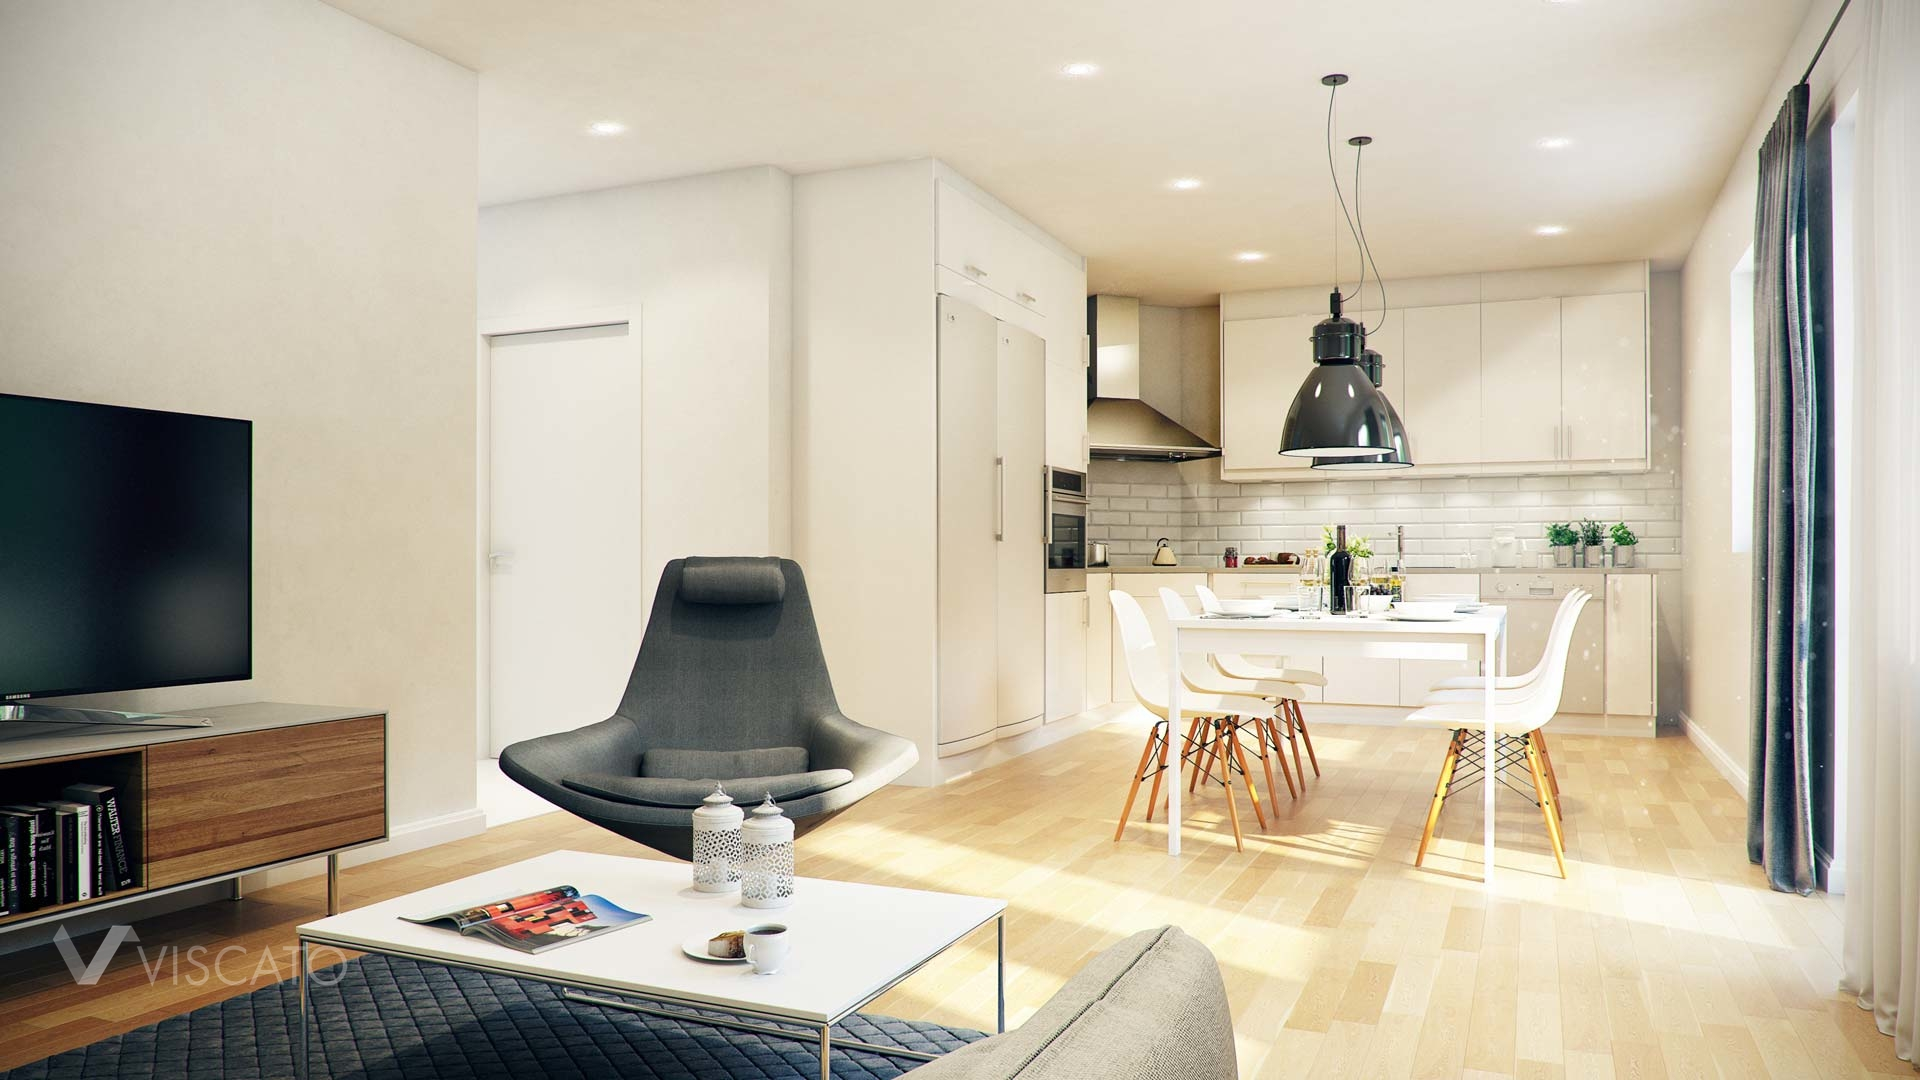 3d Interior Visualization of living room with kitchen in Knislinge, Sweden- view on living room with TV